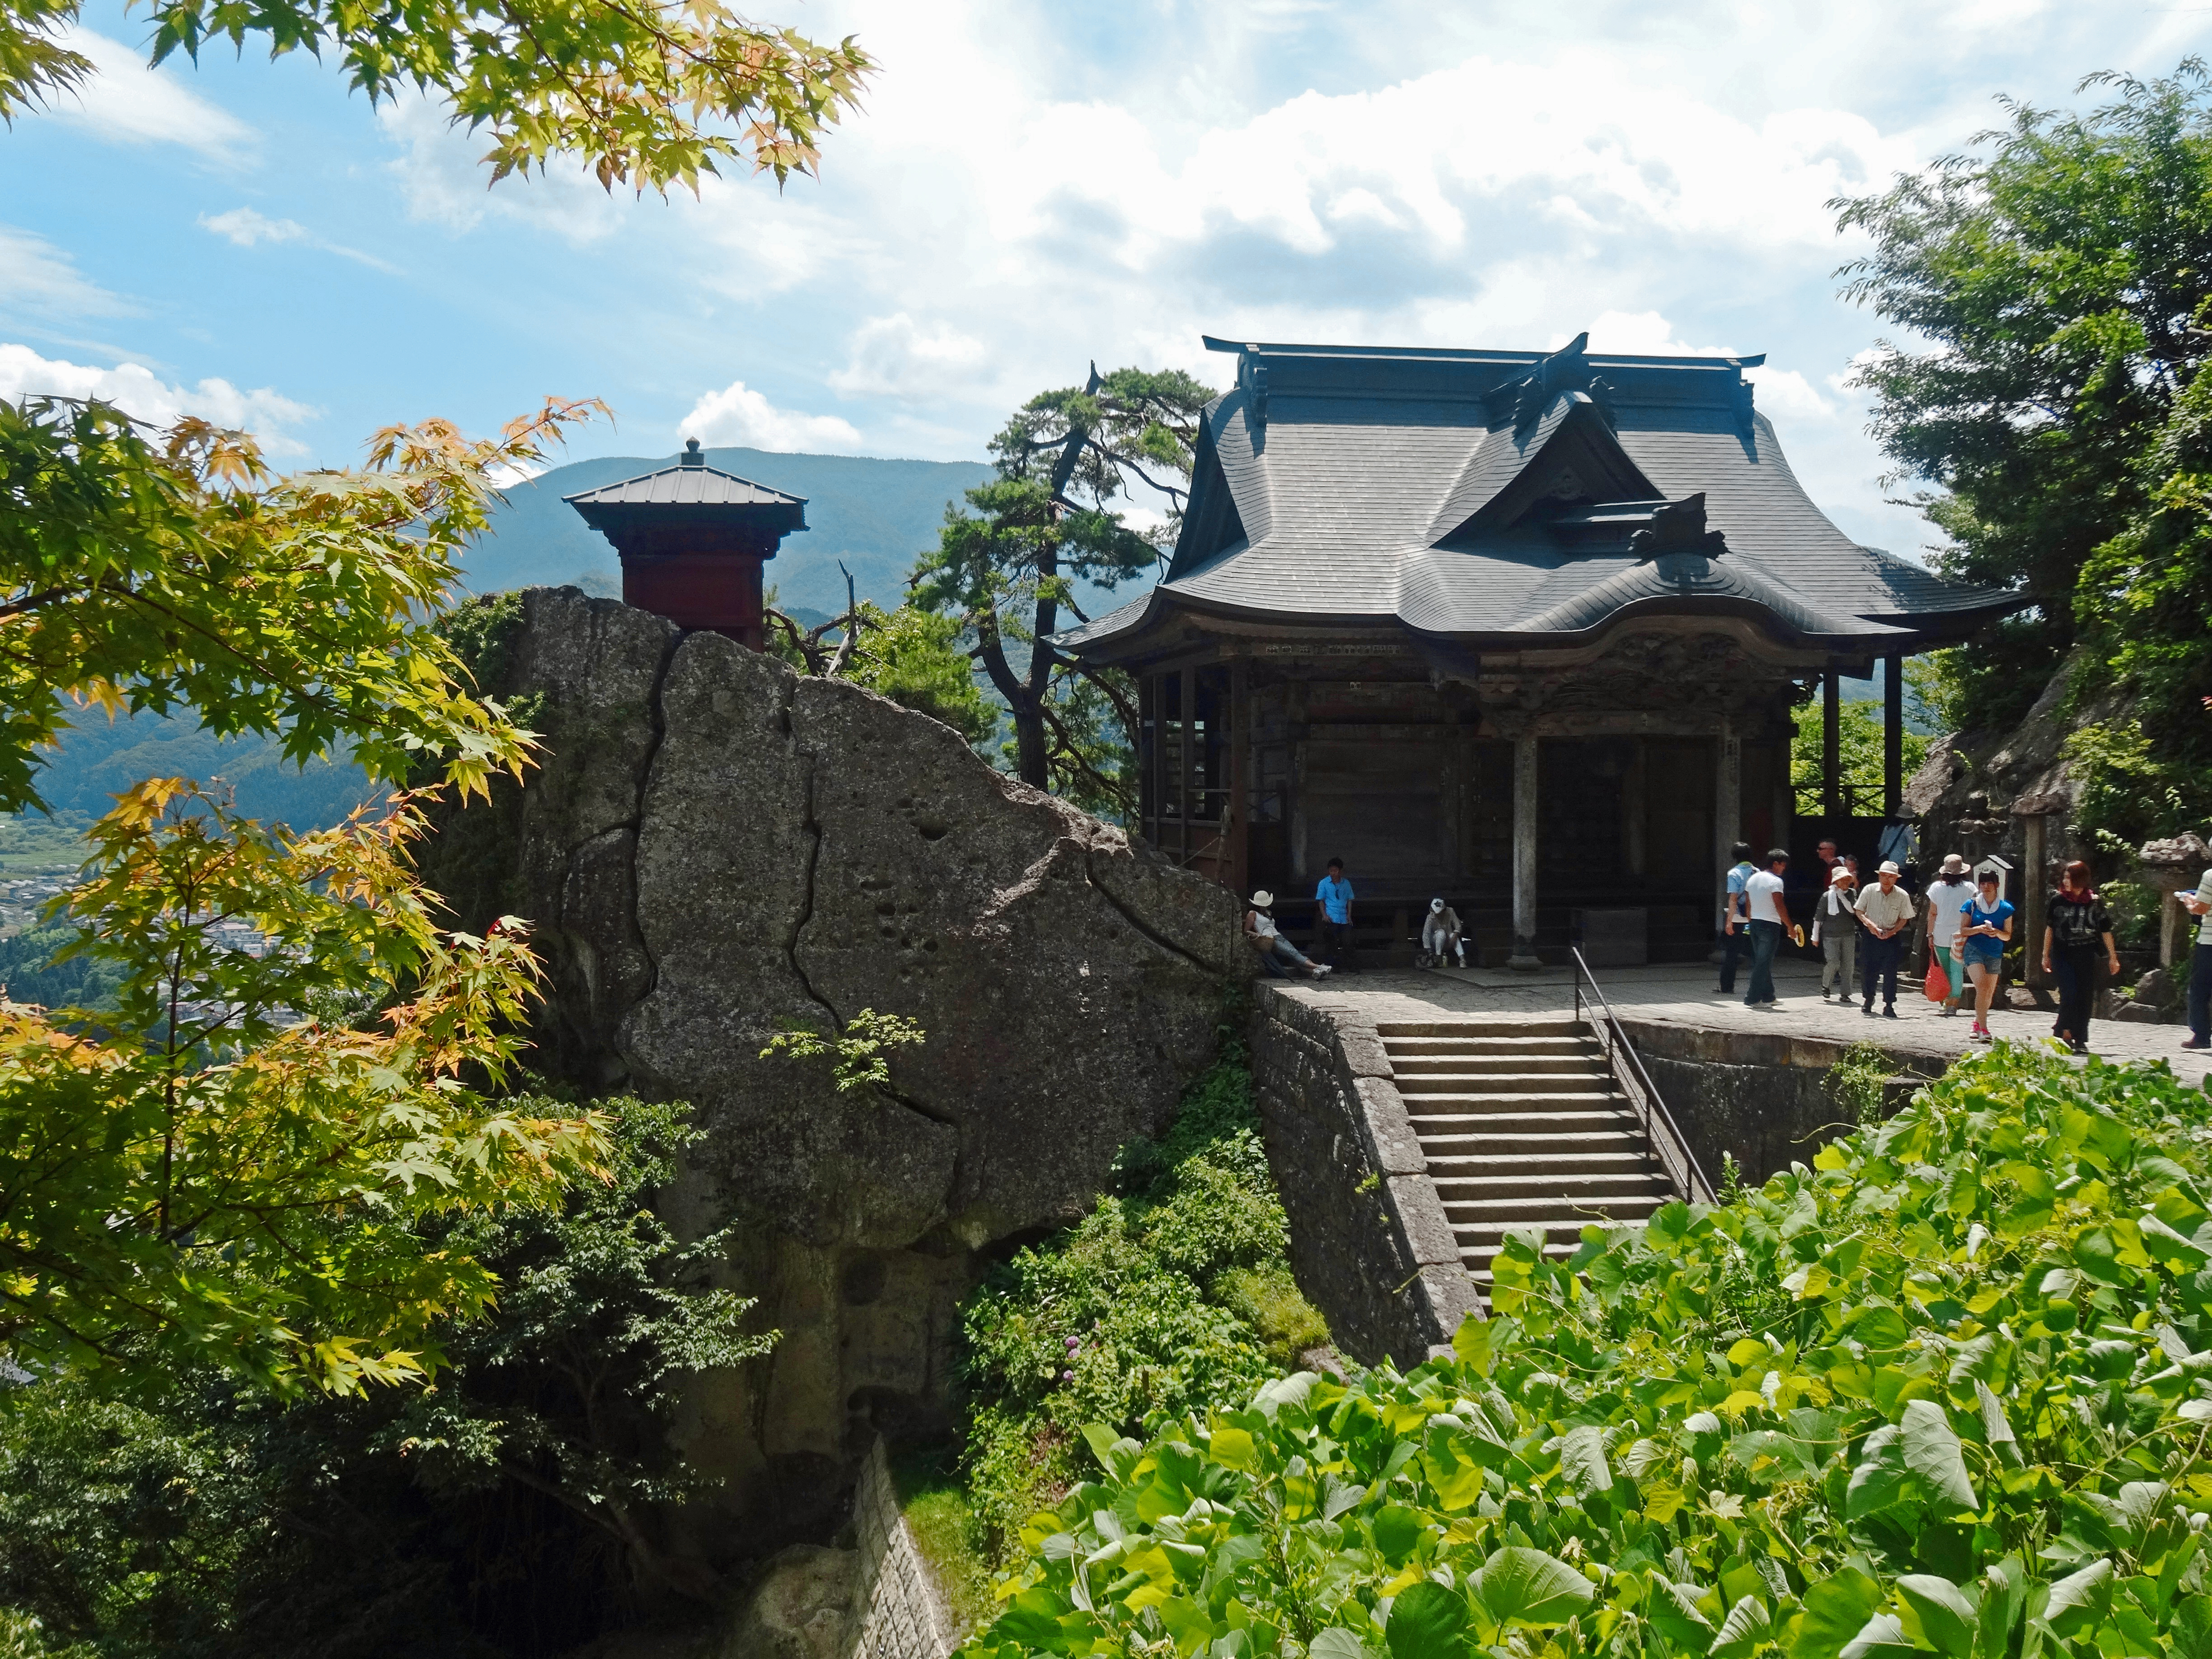 Mountain worship: Two picturesque buildings at the Risshakuji Temple complex look out across a valley. | MANDY BARTOK